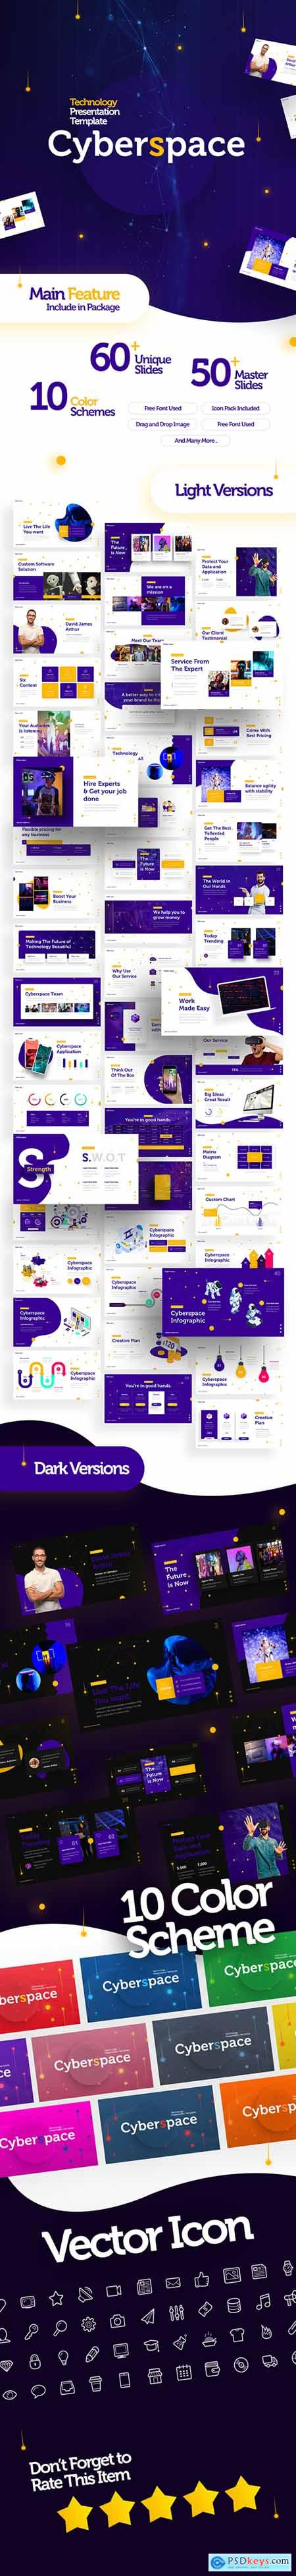 Cyberspace Technology PowerPoint Template 23979537